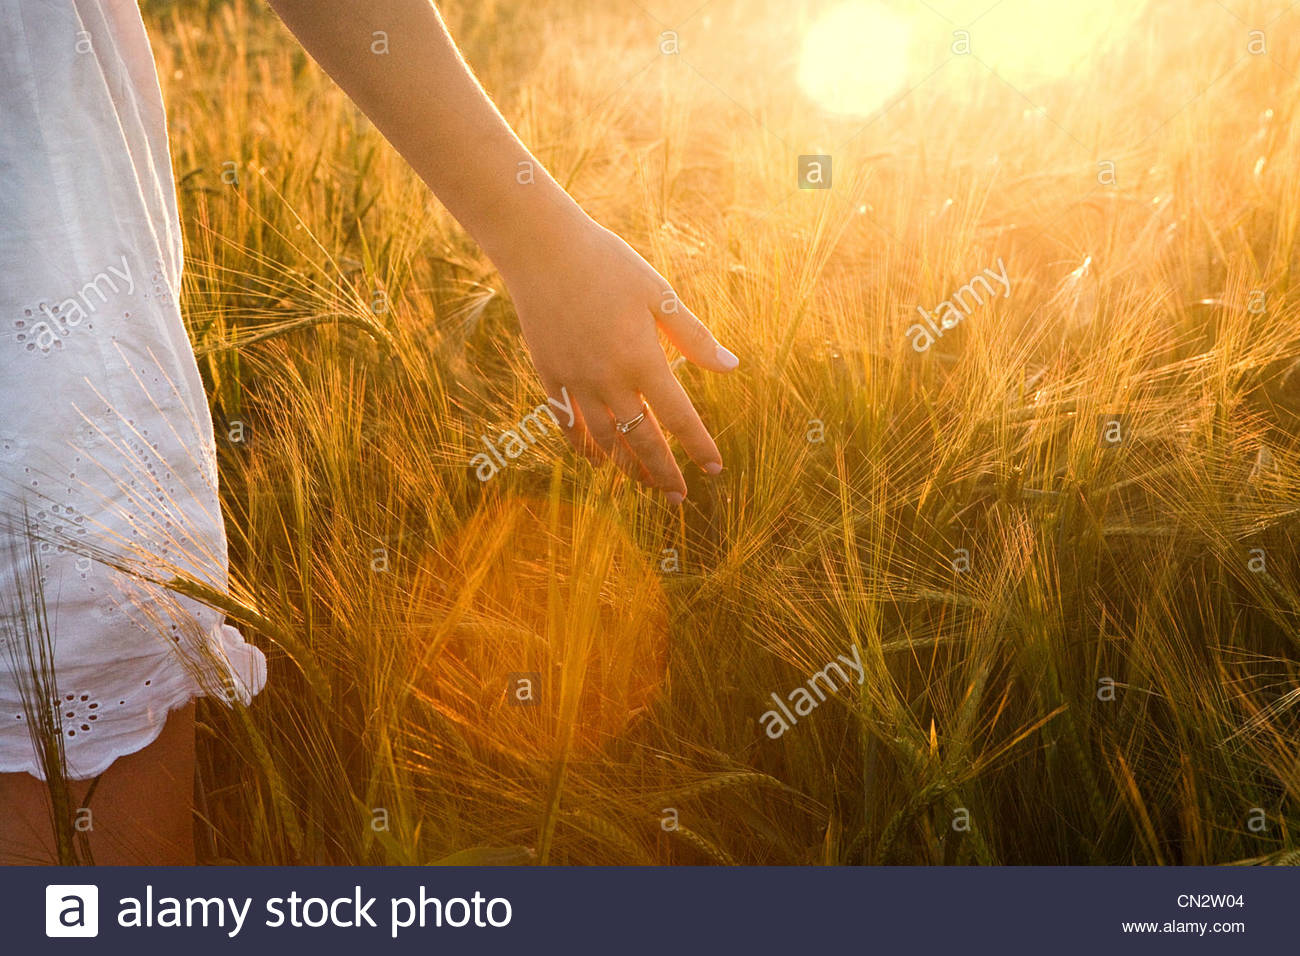 Close up of young woman in barley field - Stock Image